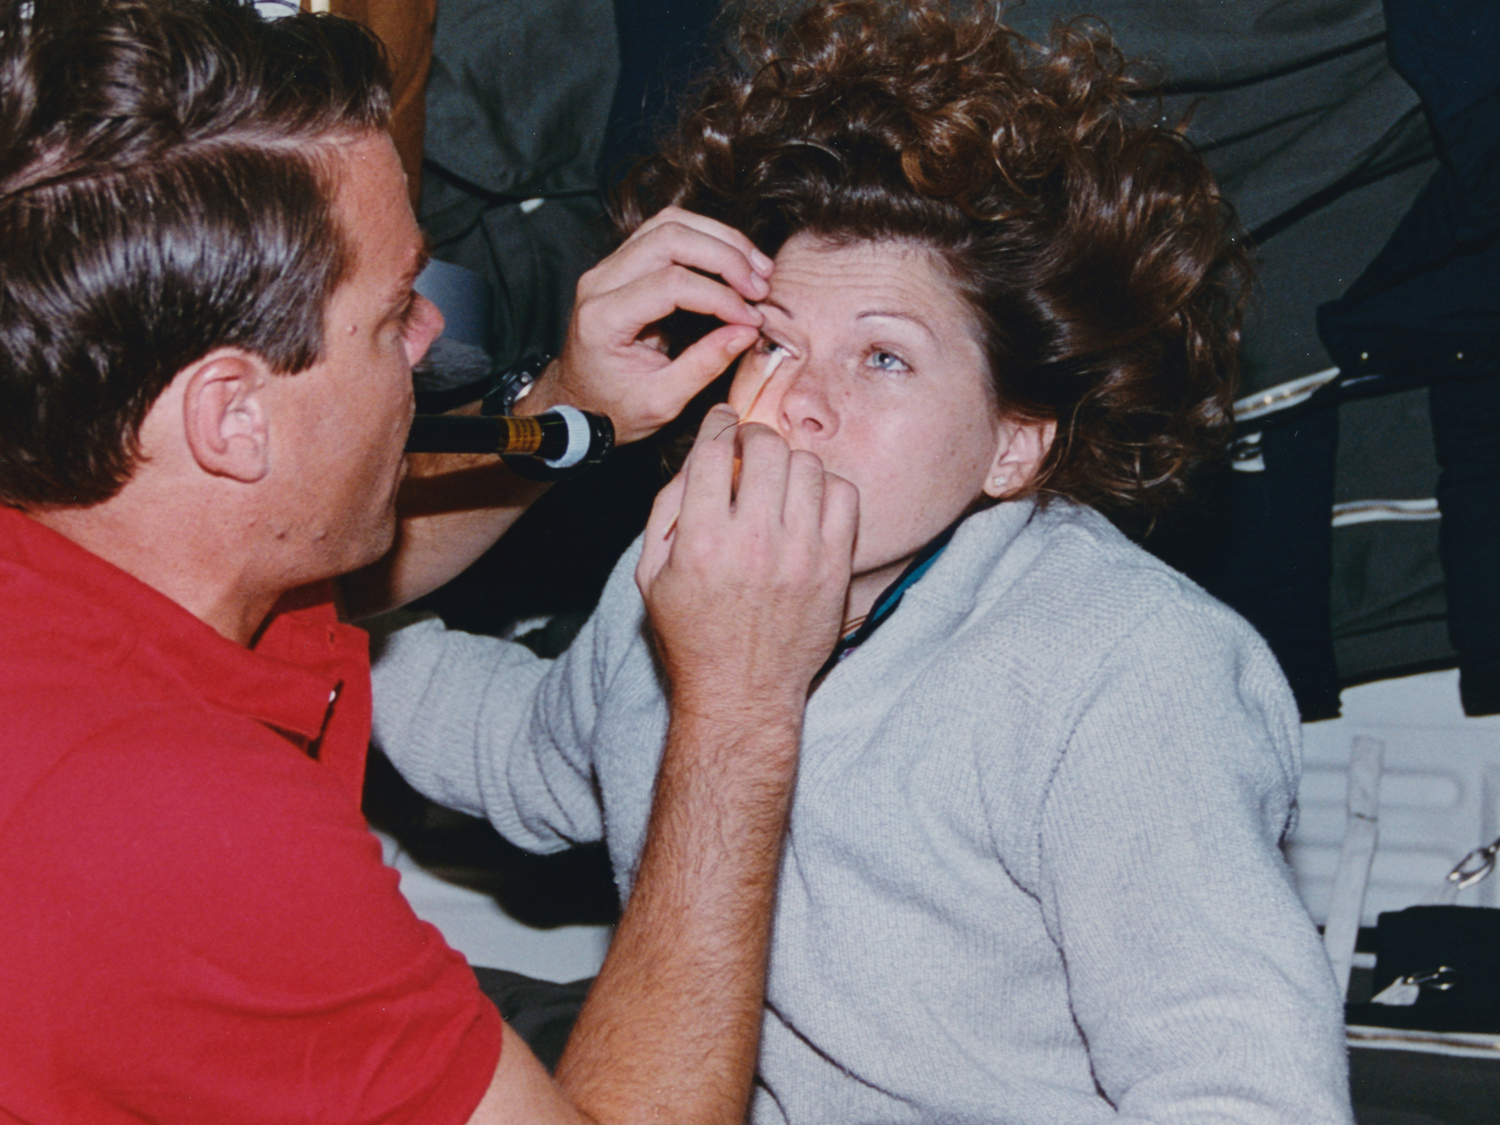 Dr. Kregel removes dust particle in eye.